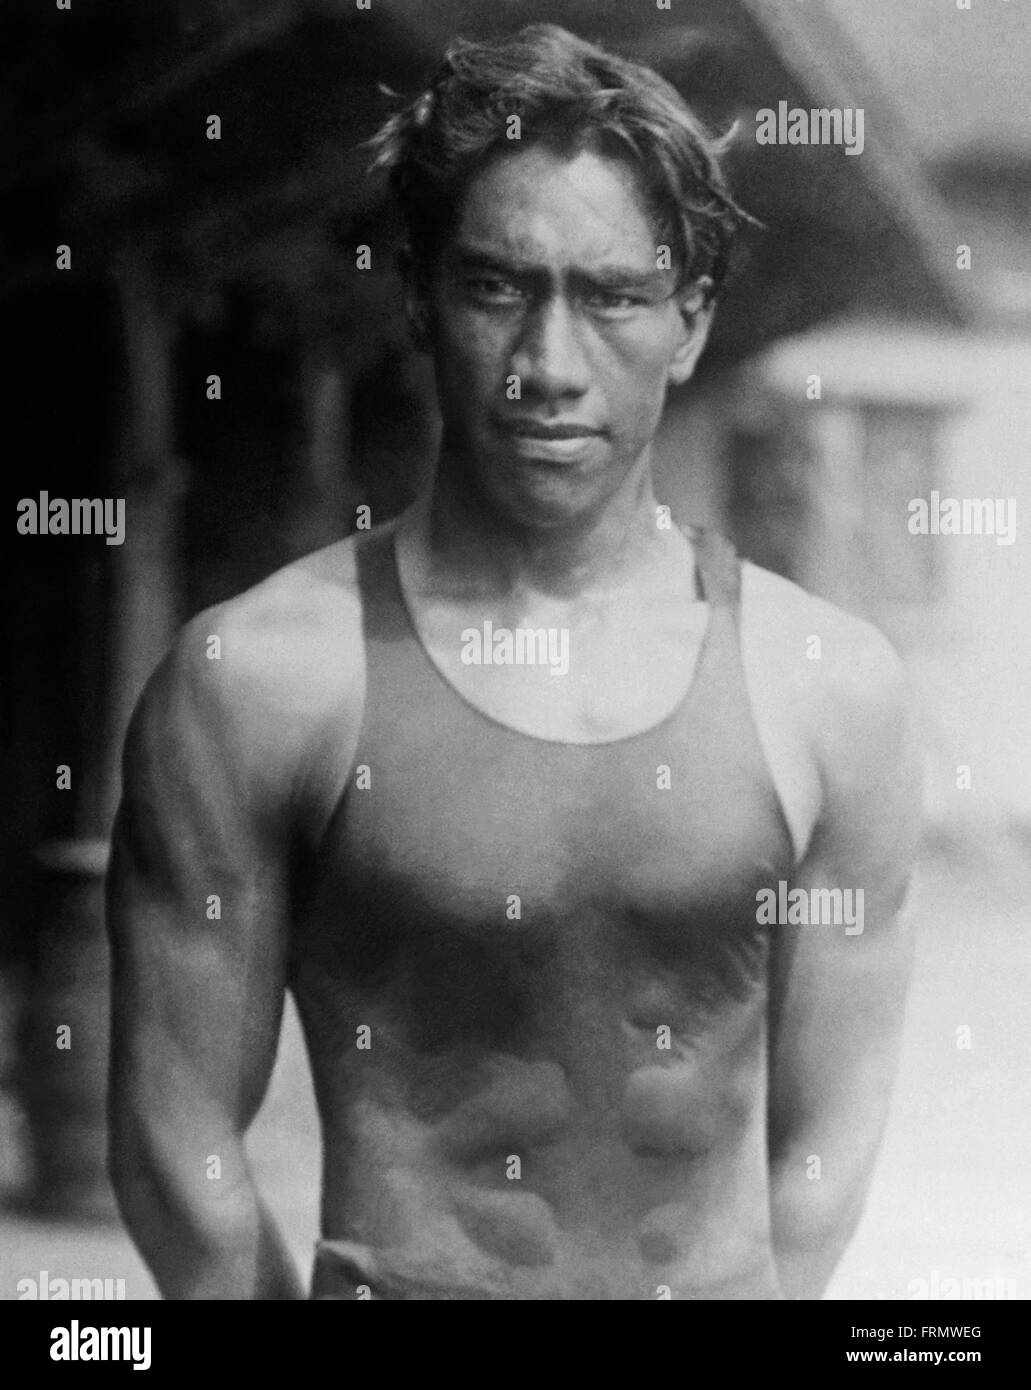 Duke Kahanamoku, the legendary 'father of modern surfing' and a multi-Olympic medalist is honored in the - Stock Image